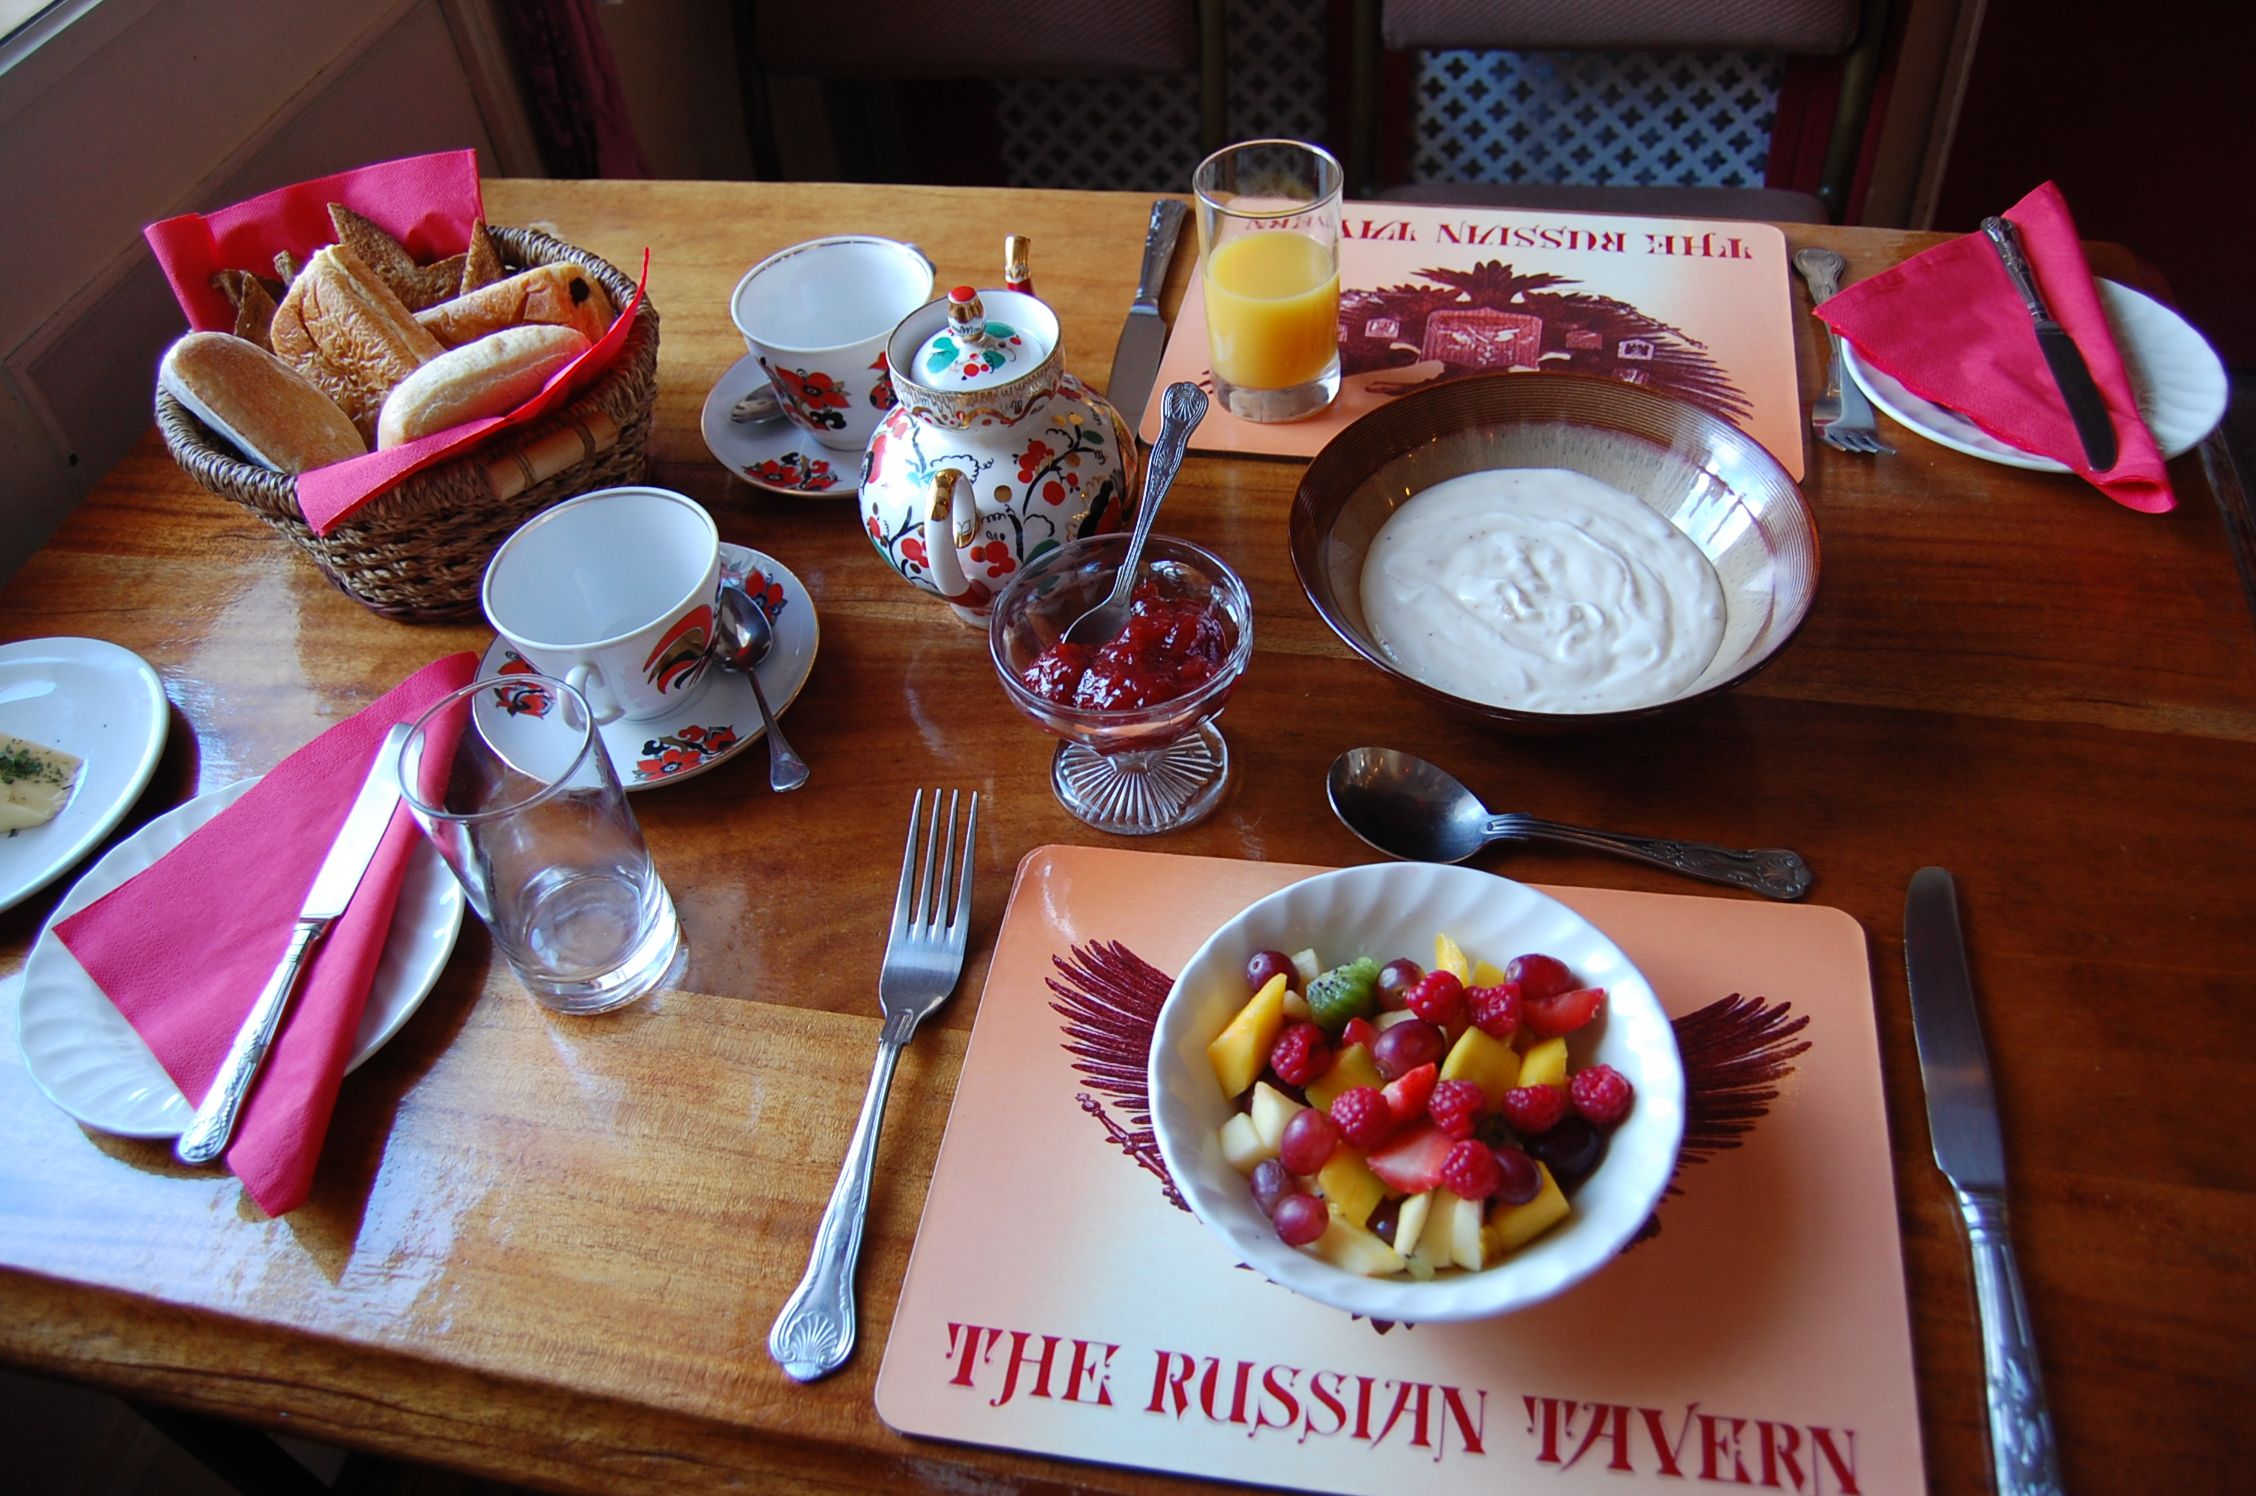 Breakfast table at The Russian Tavern